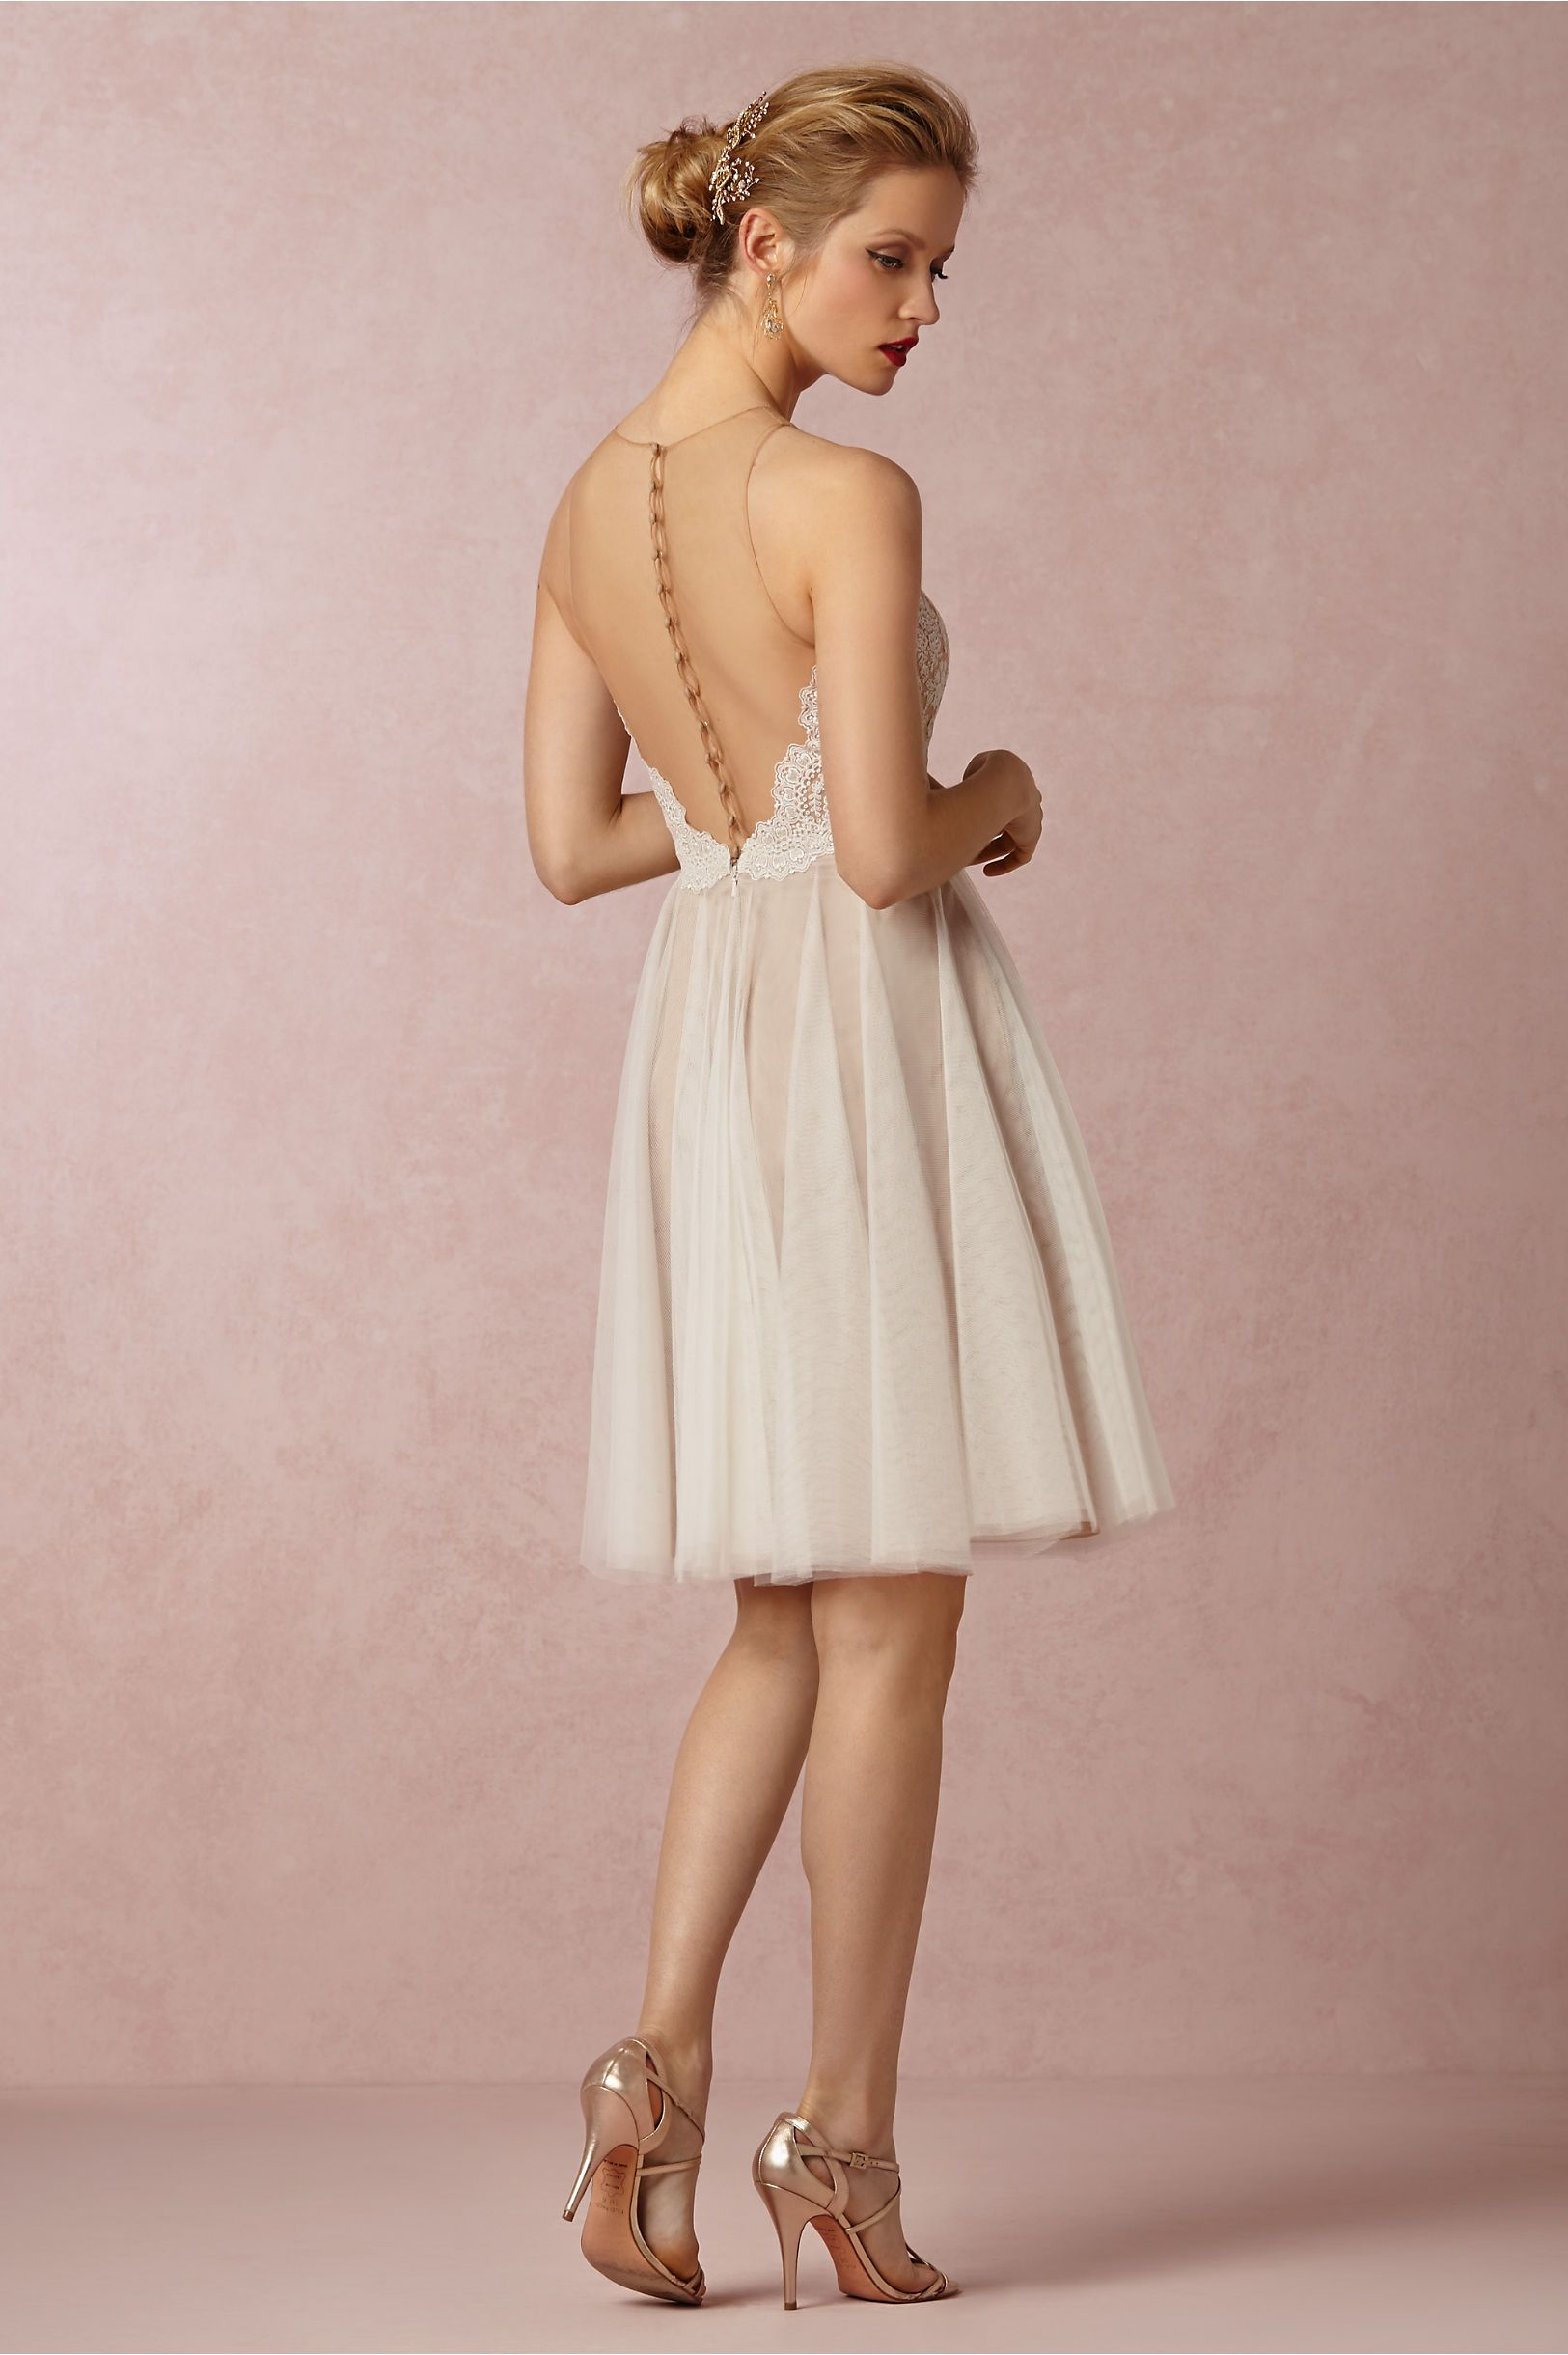 Messina Dress in Bride Wedding Dresses at BHLDN | Bridal Fashions ...